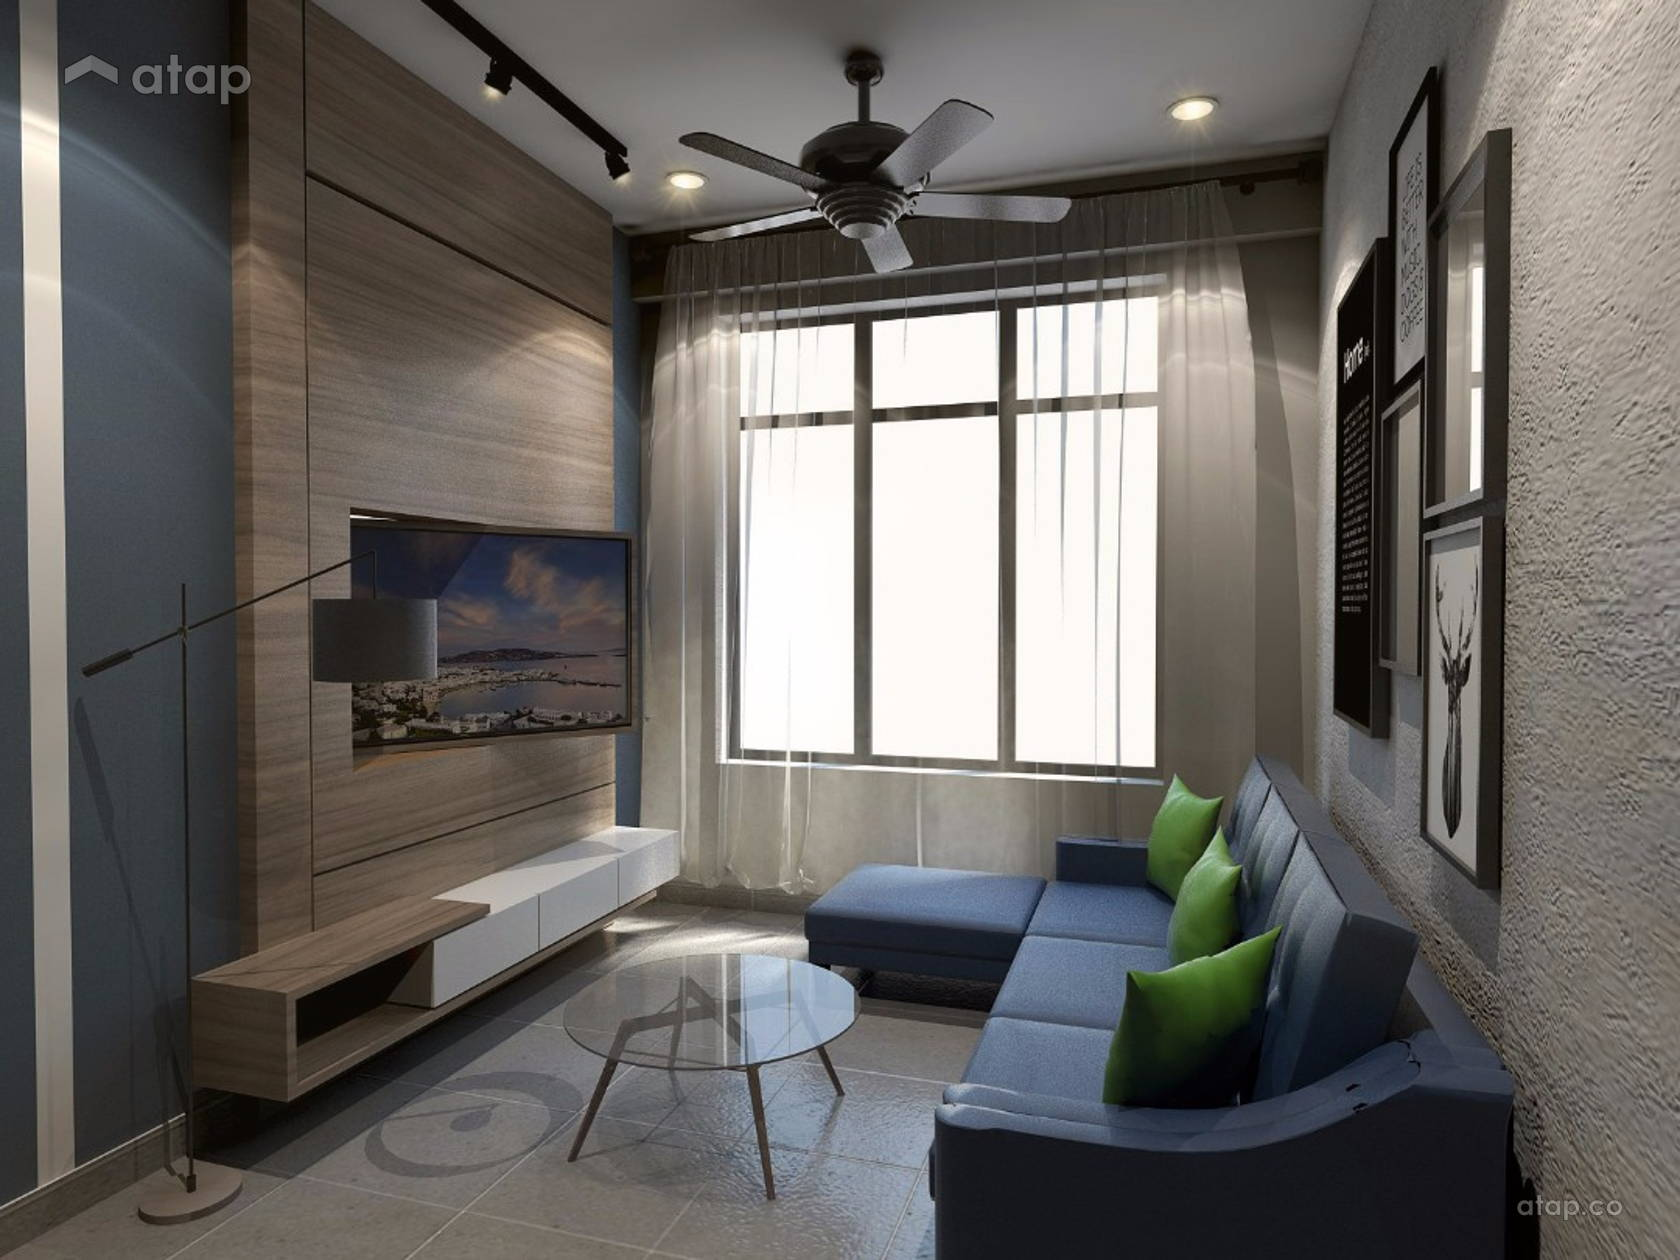 KANVAS SOHO,CYBERJAYA interior design renovation ideas, photos and ...